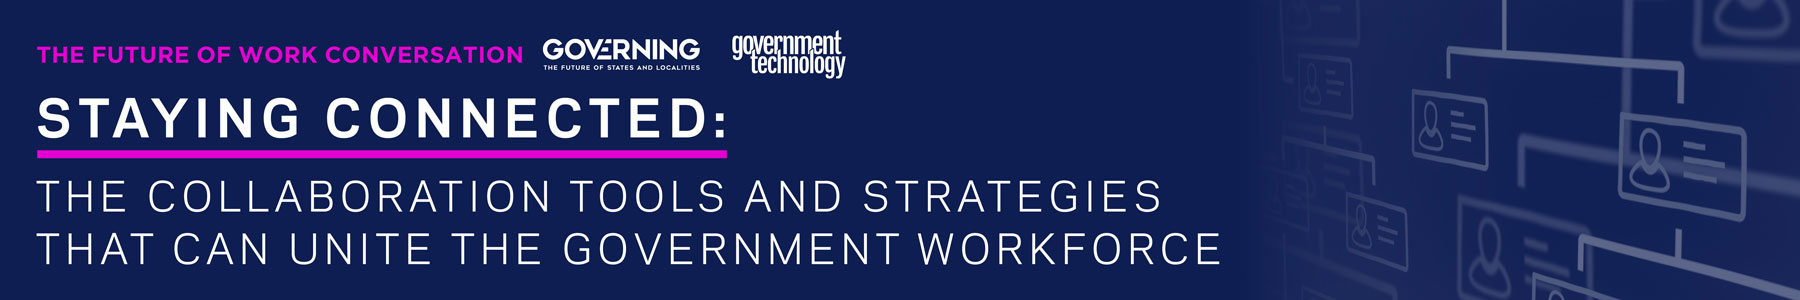 Staying Connected: The Collaboration Tools and Strategies that can Unite the Government Workforce